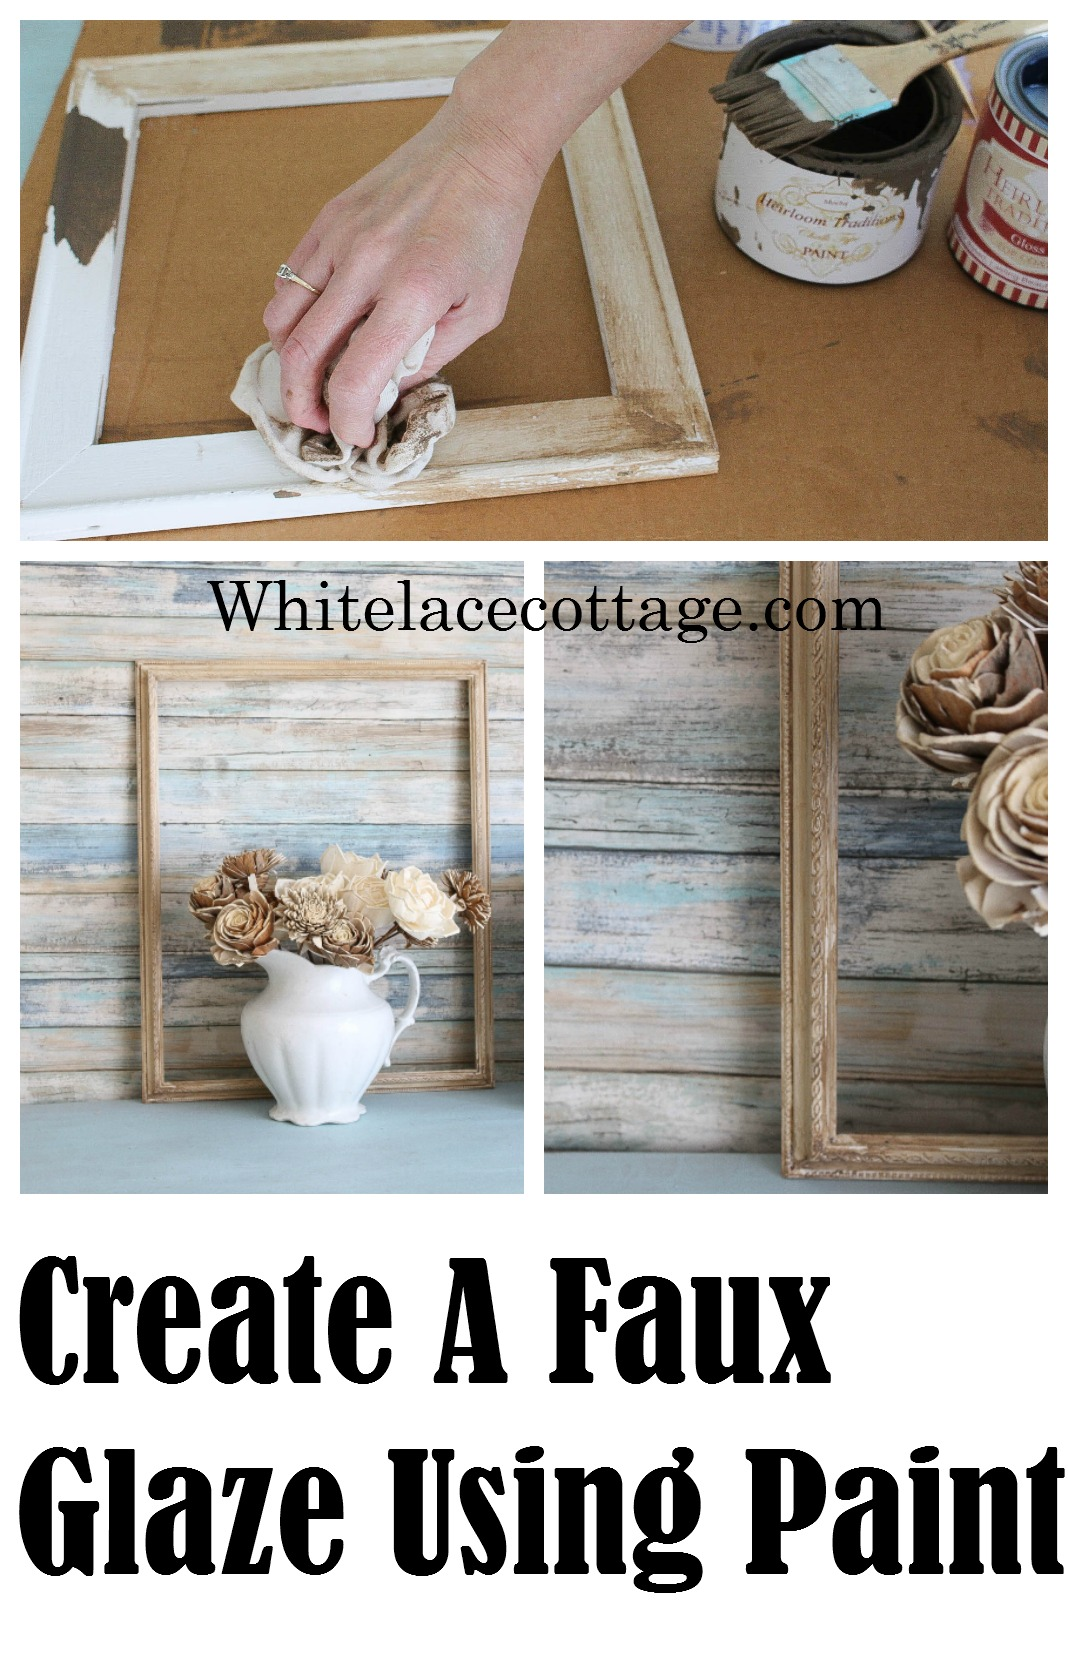 How To Create A Faux Glaze Using Paint Anne P Makeup And More